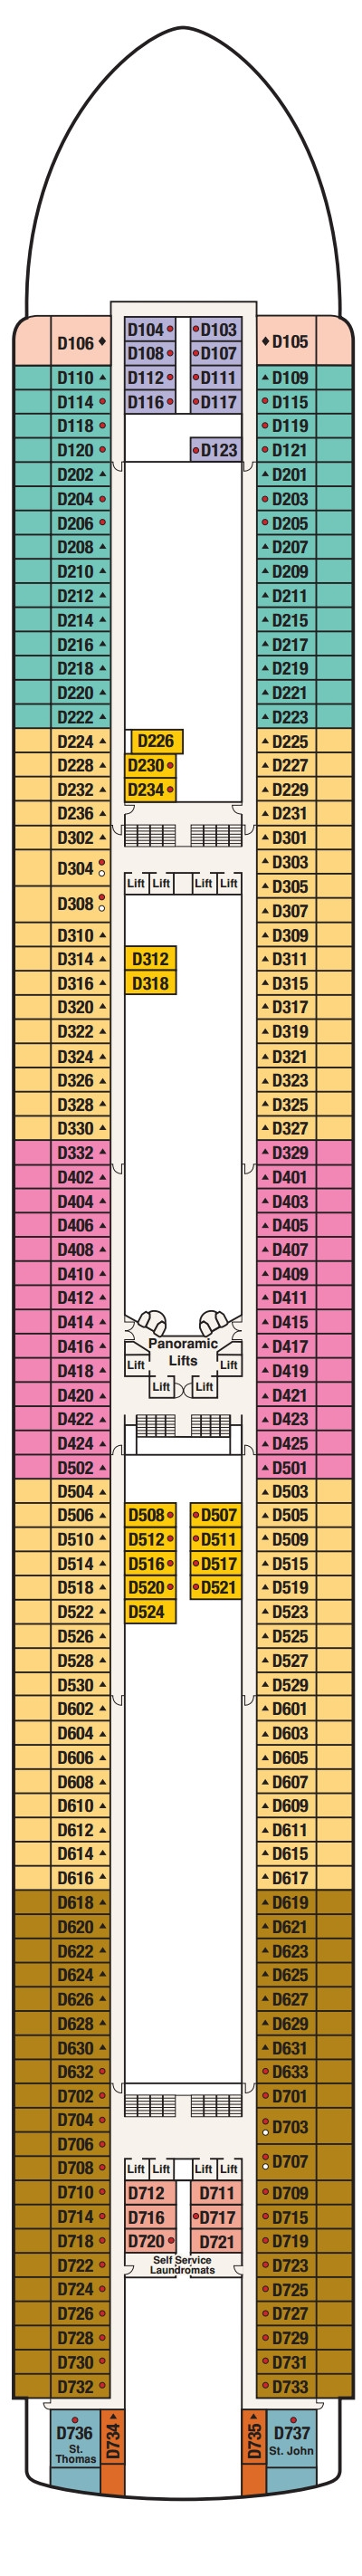 Crown Princess Dolphin Deck 9 layout